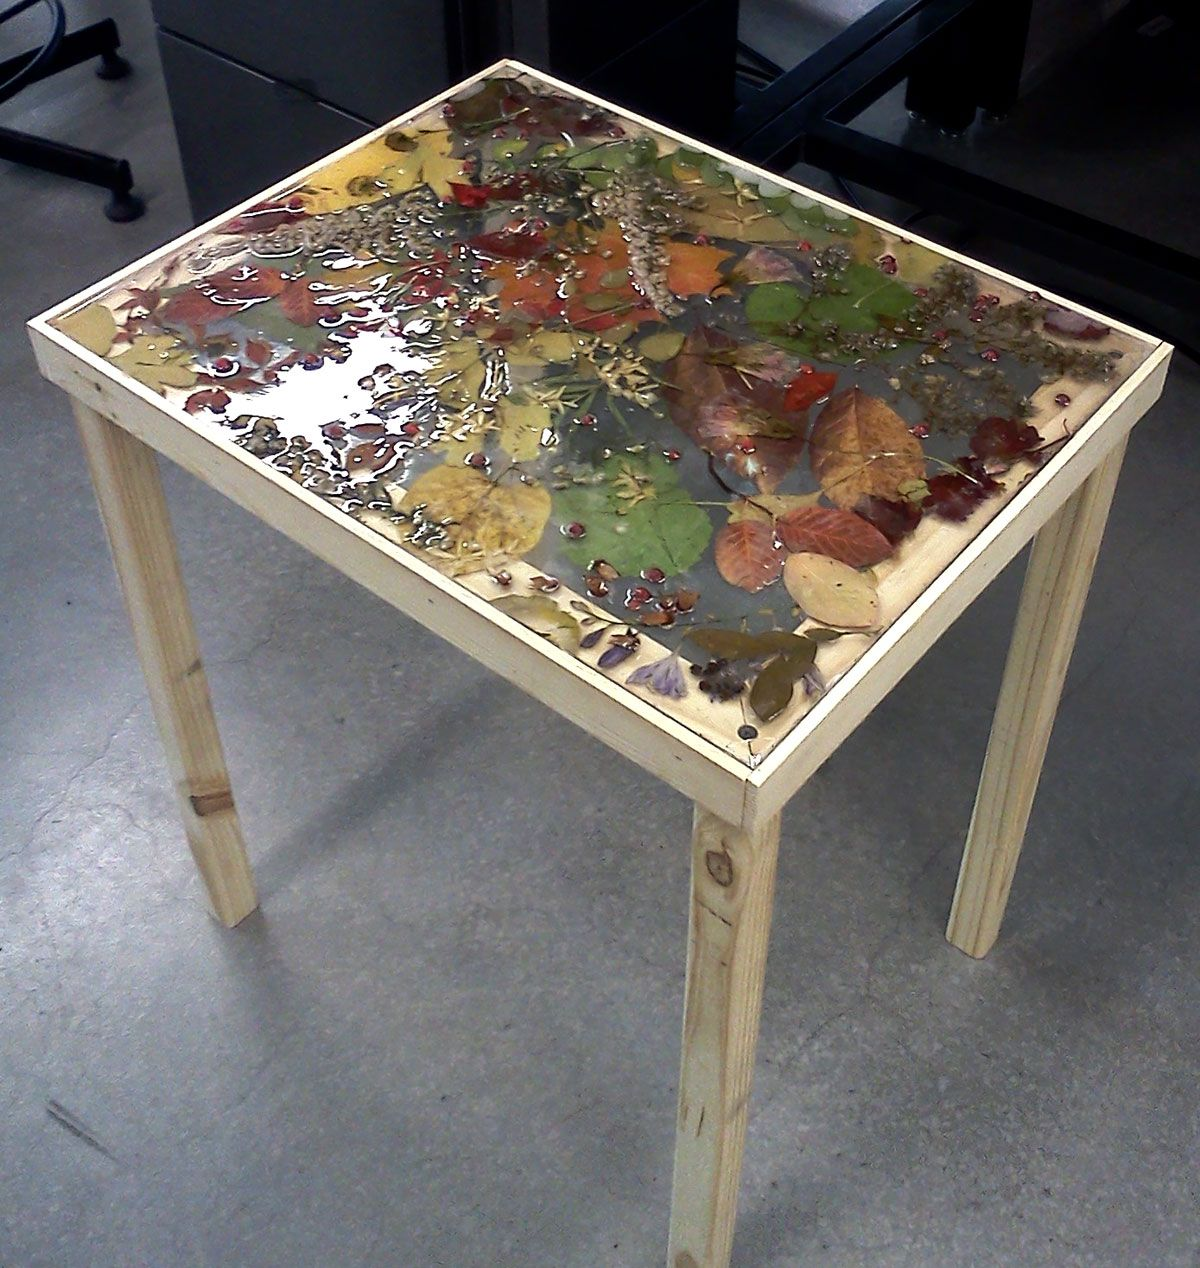 resin ideas pressed leaves and plants in resin on handcrafted table crafts with nature. Black Bedroom Furniture Sets. Home Design Ideas